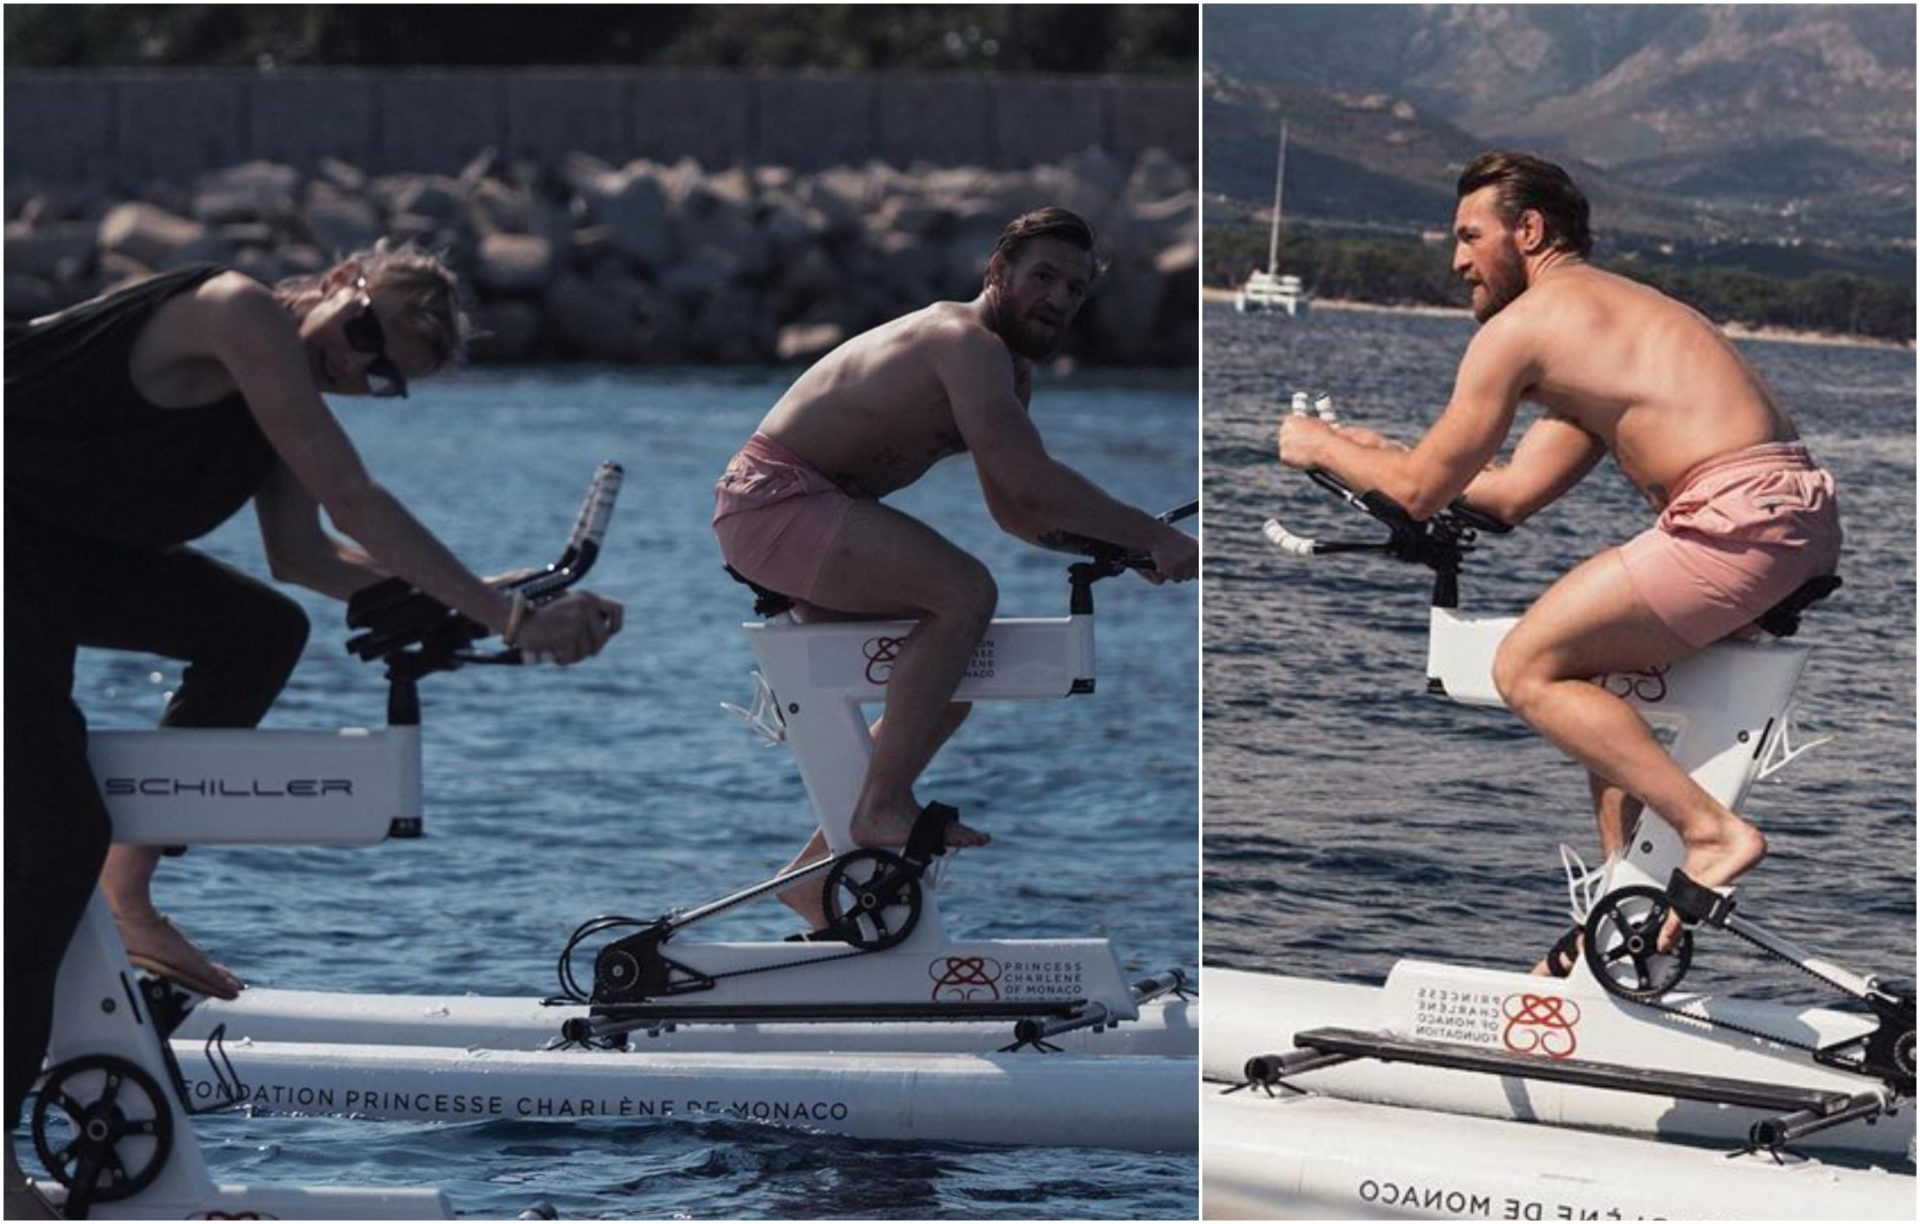 Conor McGregor plans 180km 'water voyage' with Princess Charlene of Monaco for charity - Conor McGregor